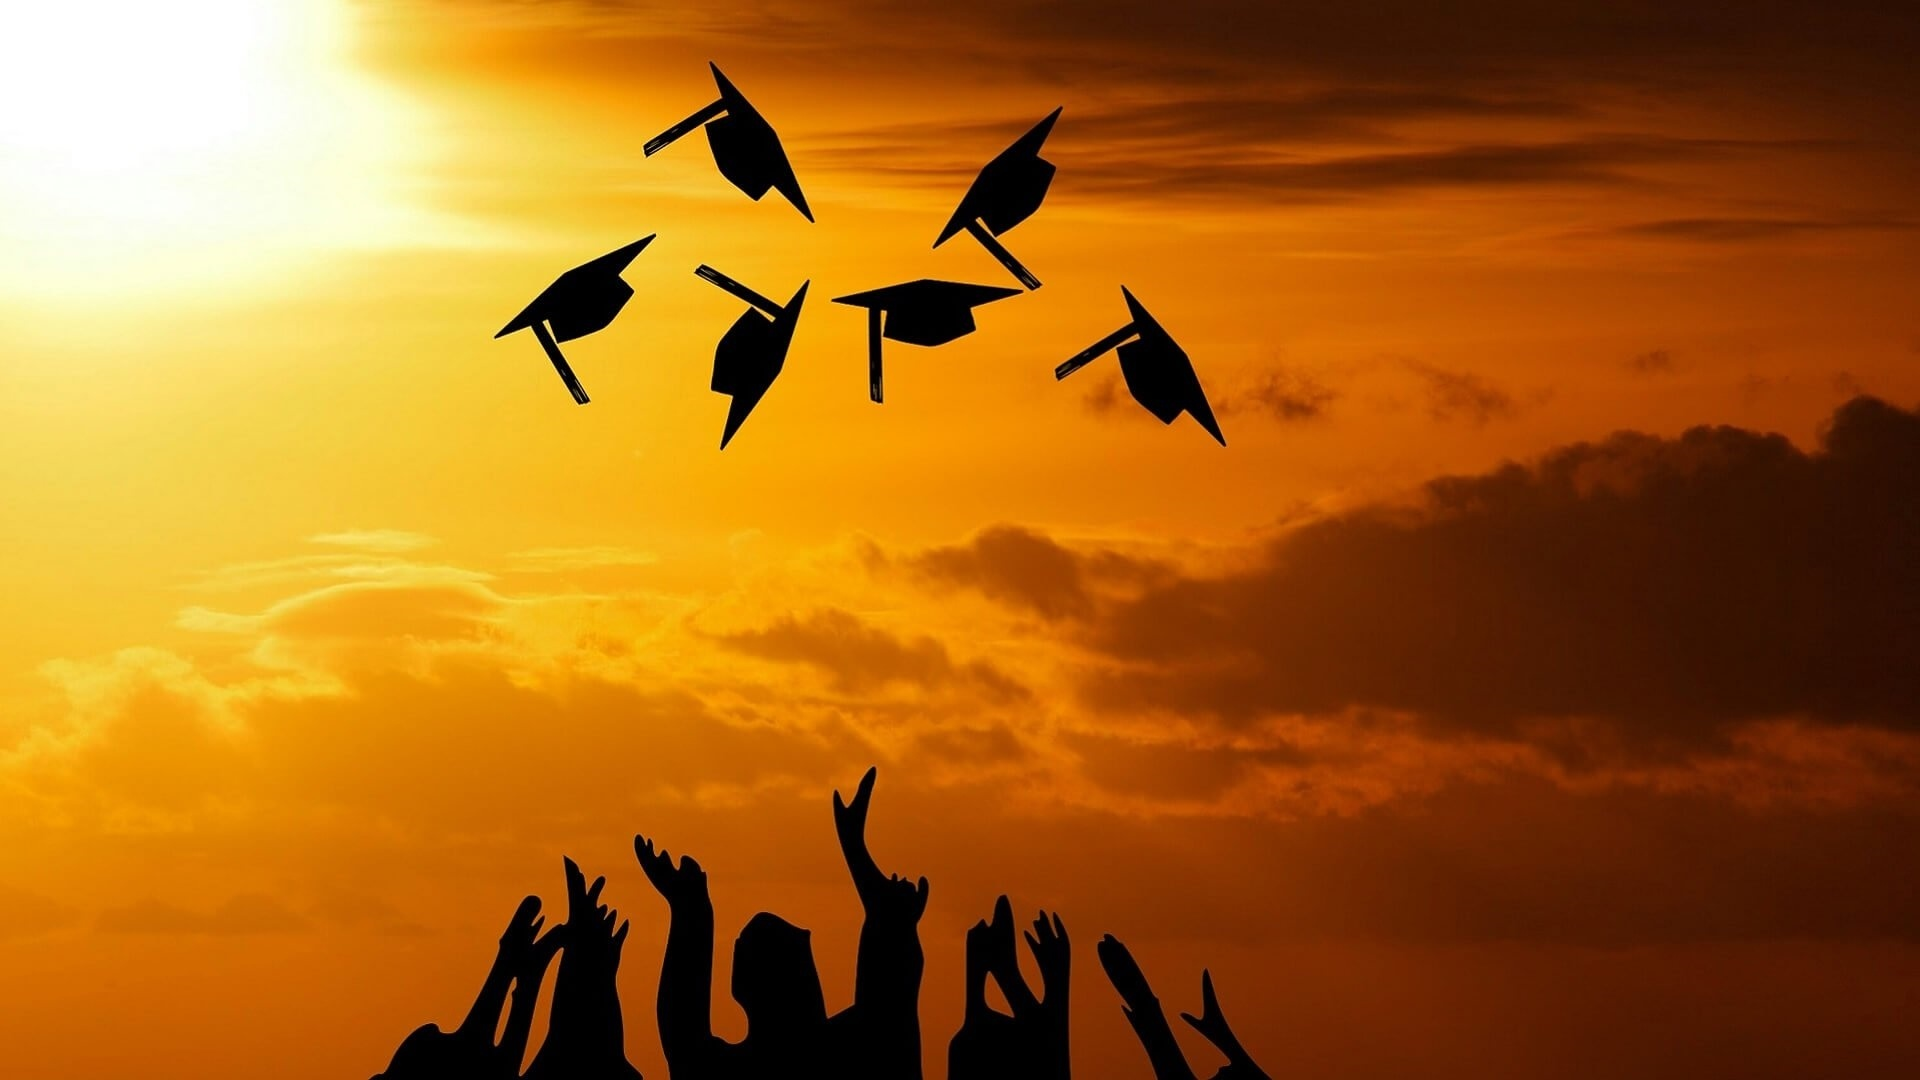 Graduation Free Wallpaper and Background